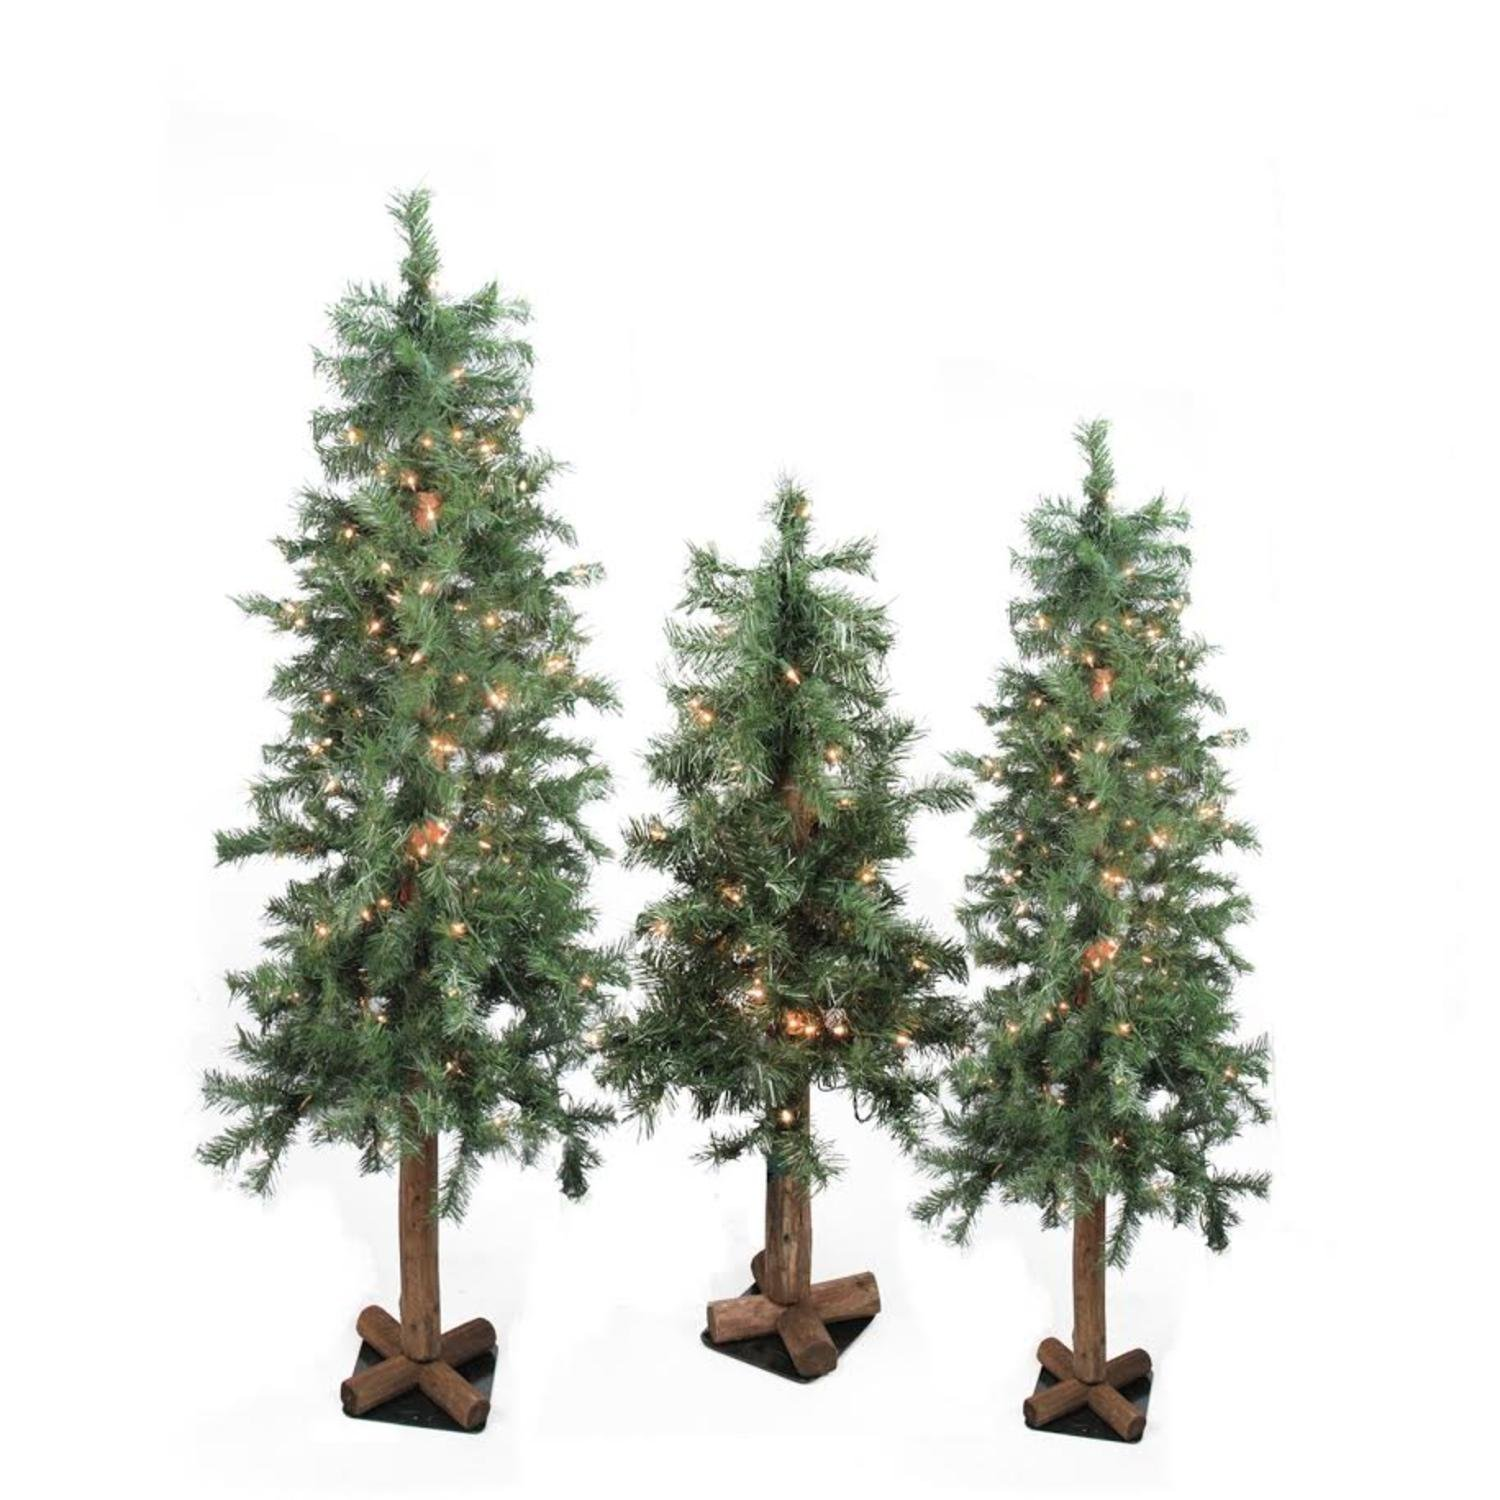 amazoncom set of 3 pre lit woodland alpine artificial christmas trees 3 4 and 5 clear lights home kitchen - Mini Artificial Christmas Trees